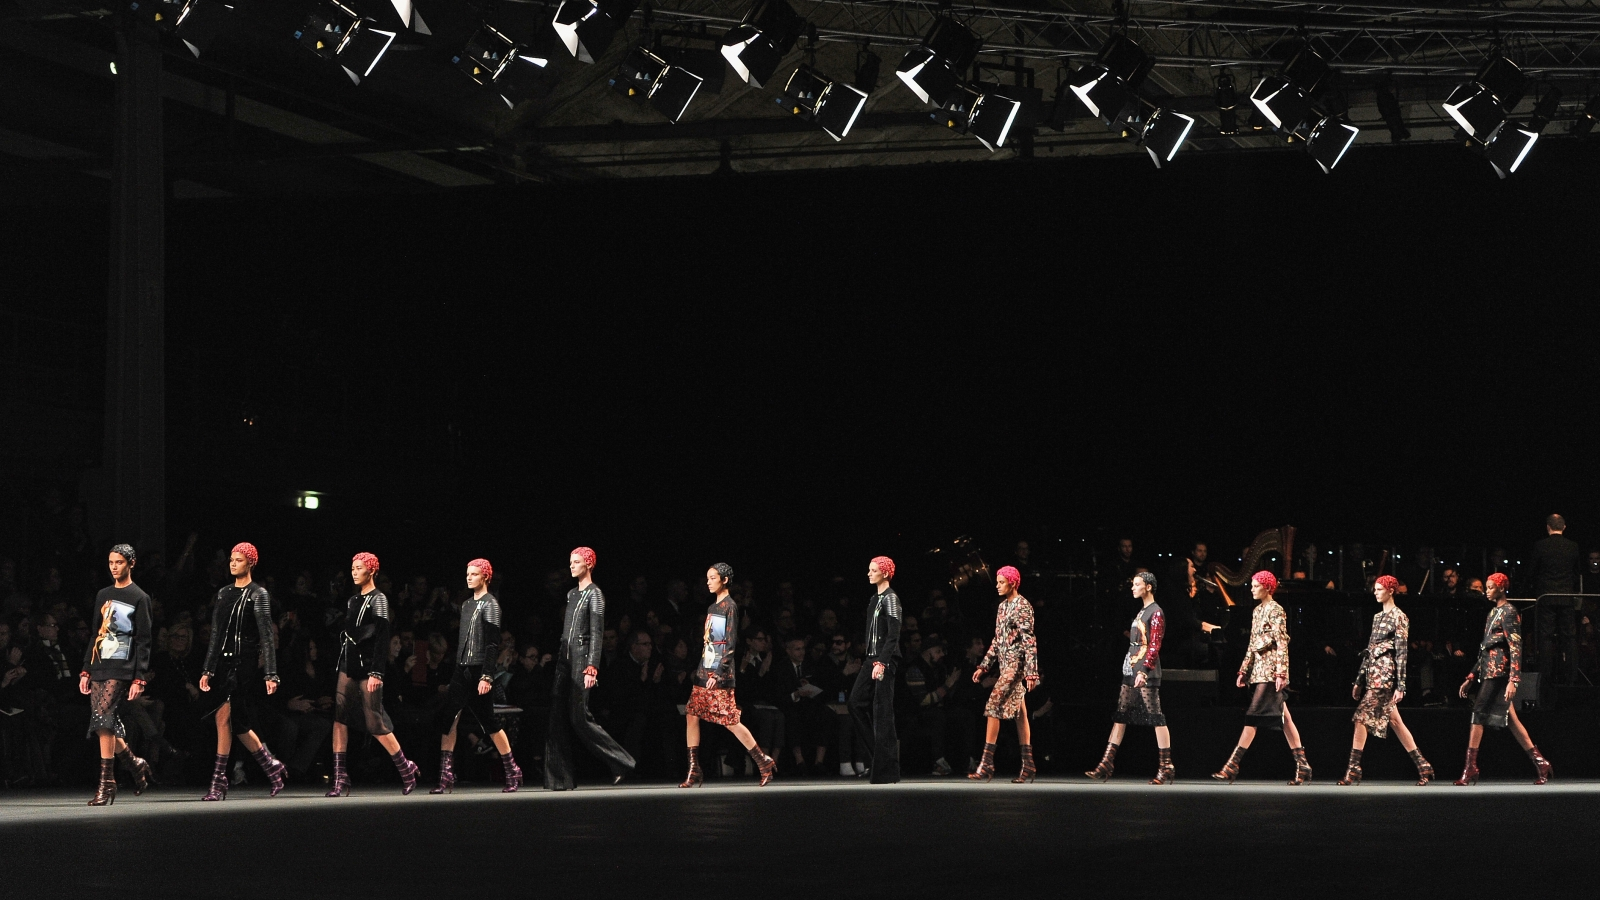 download Givenchy fashion show wallpapers and images 1600x900